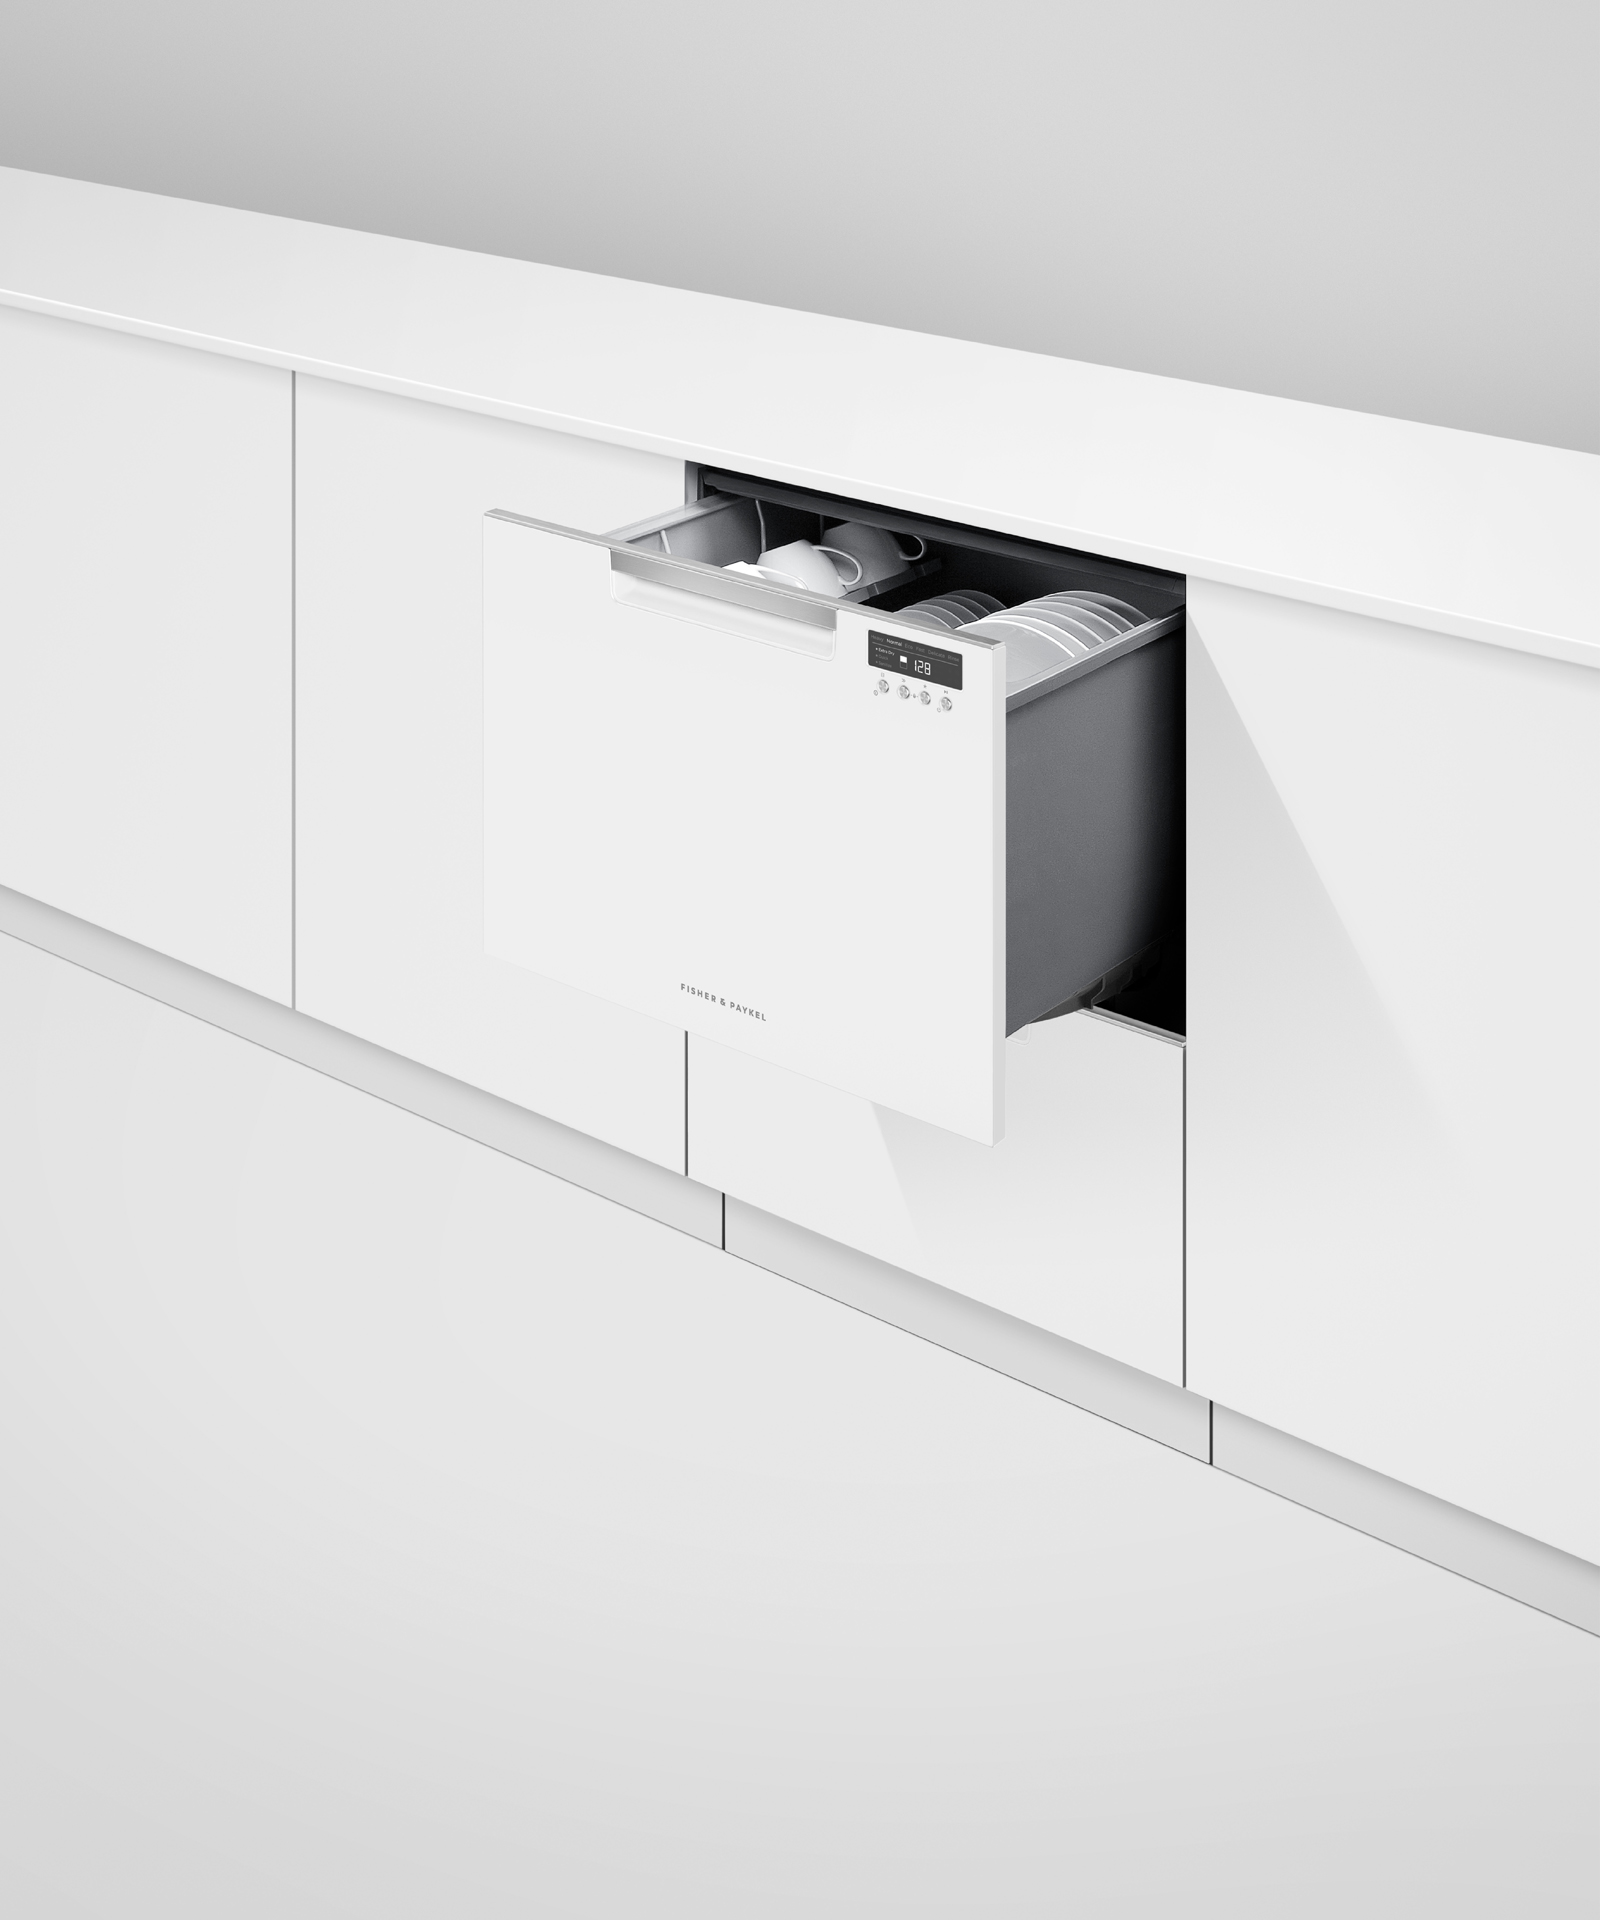 Model: DD24DCTW9 N   Fisher and Paykel Double DishDrawer™ Dishwasher, Tall, Sanitize